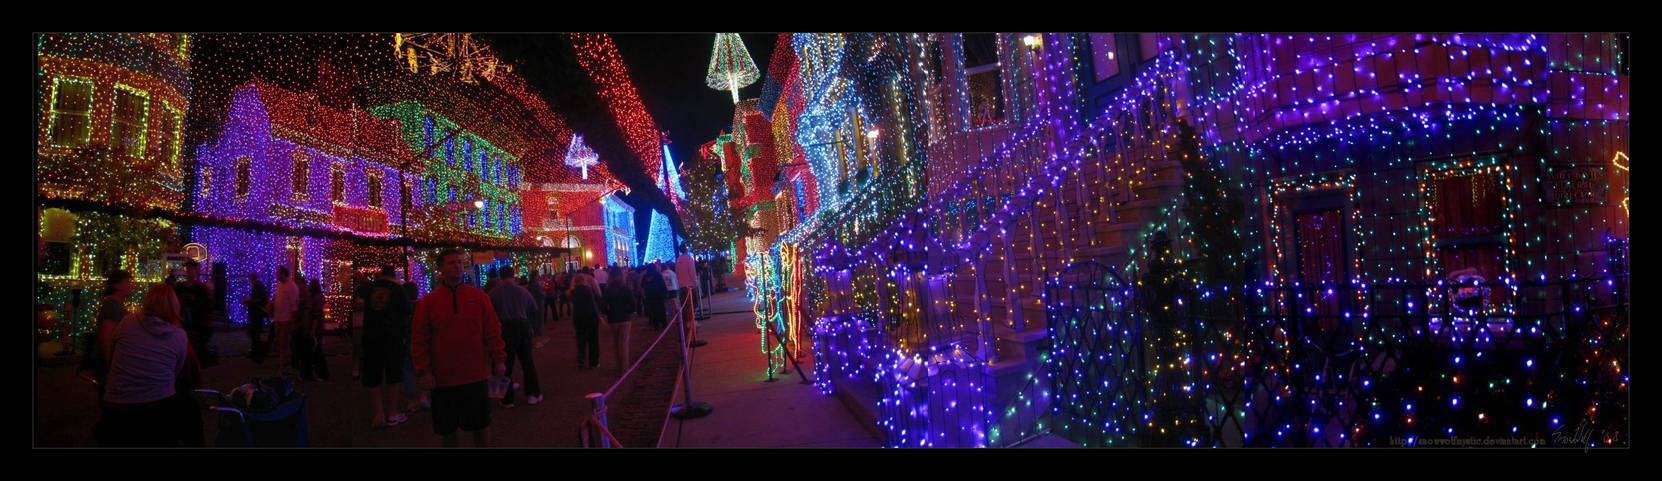 Spectacle of Lights